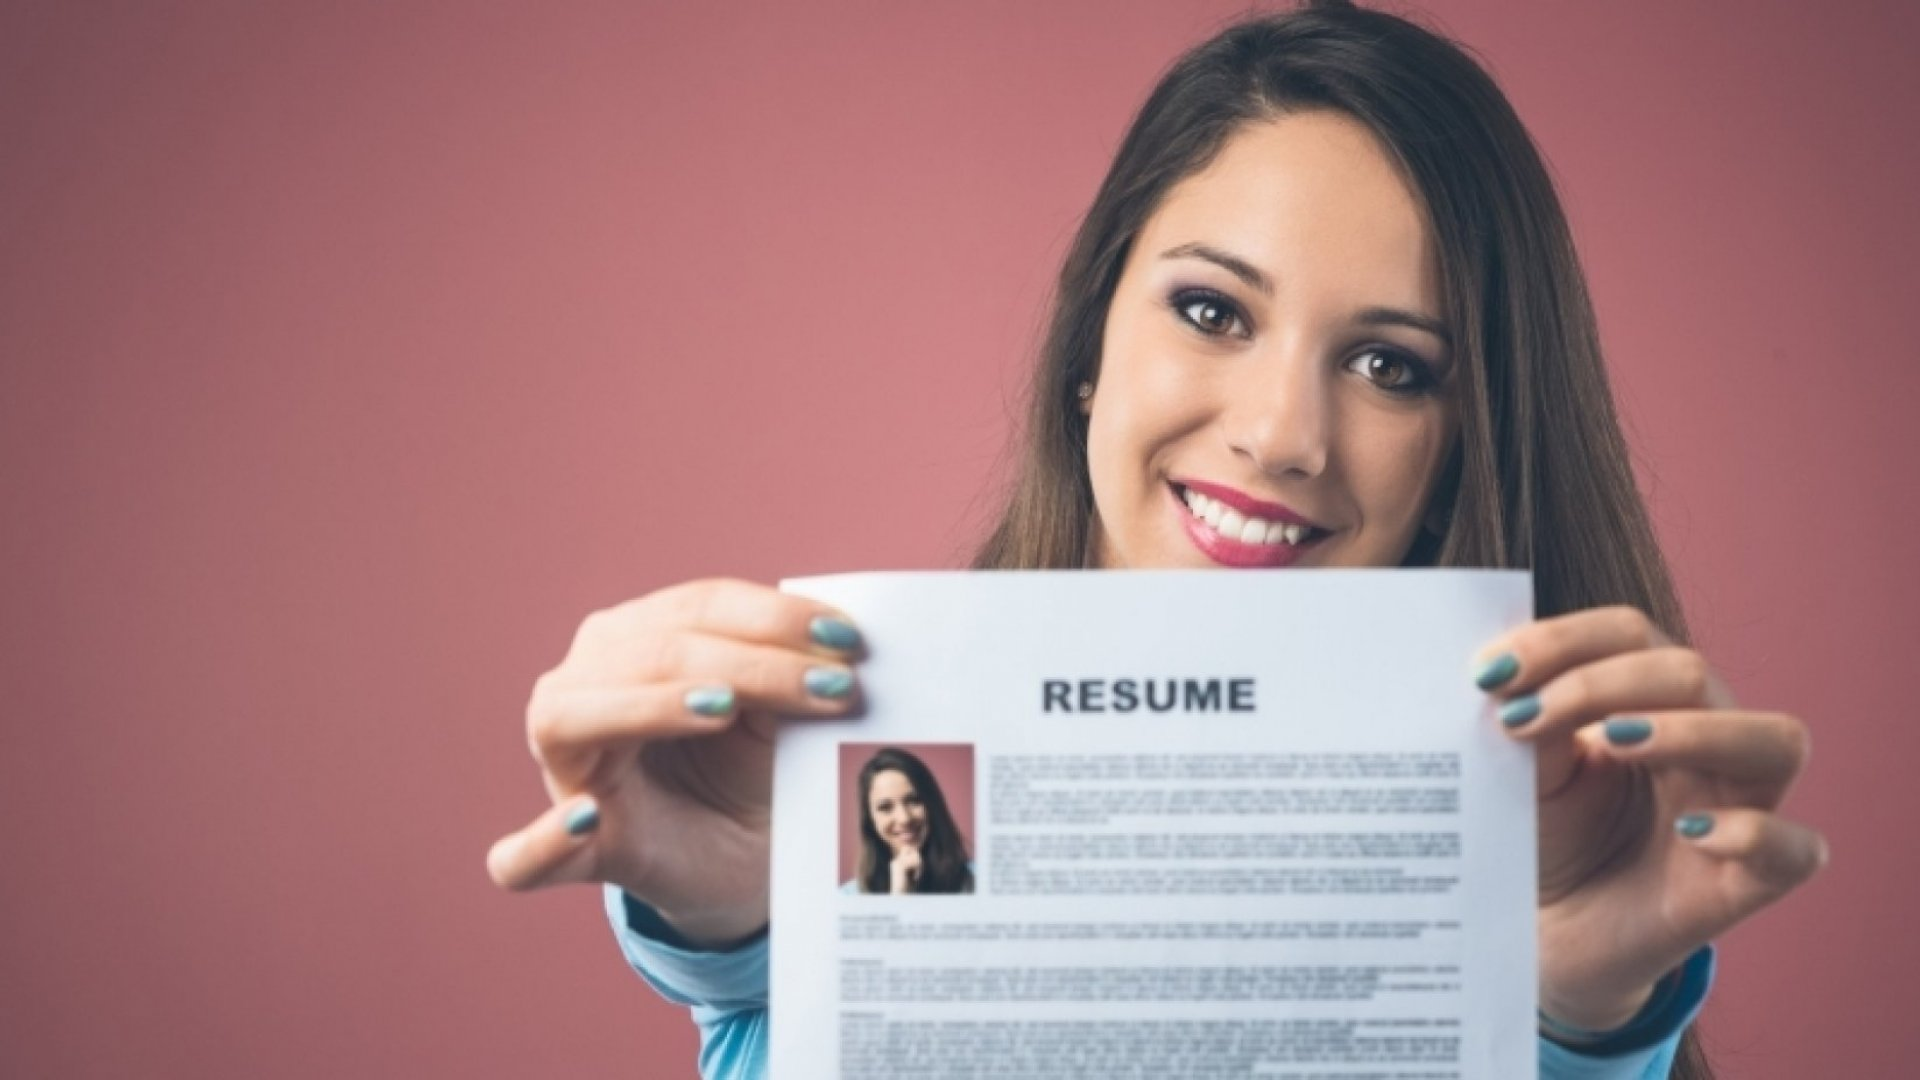 7 Resume Mistakes That Make You Look Really Unprofessional